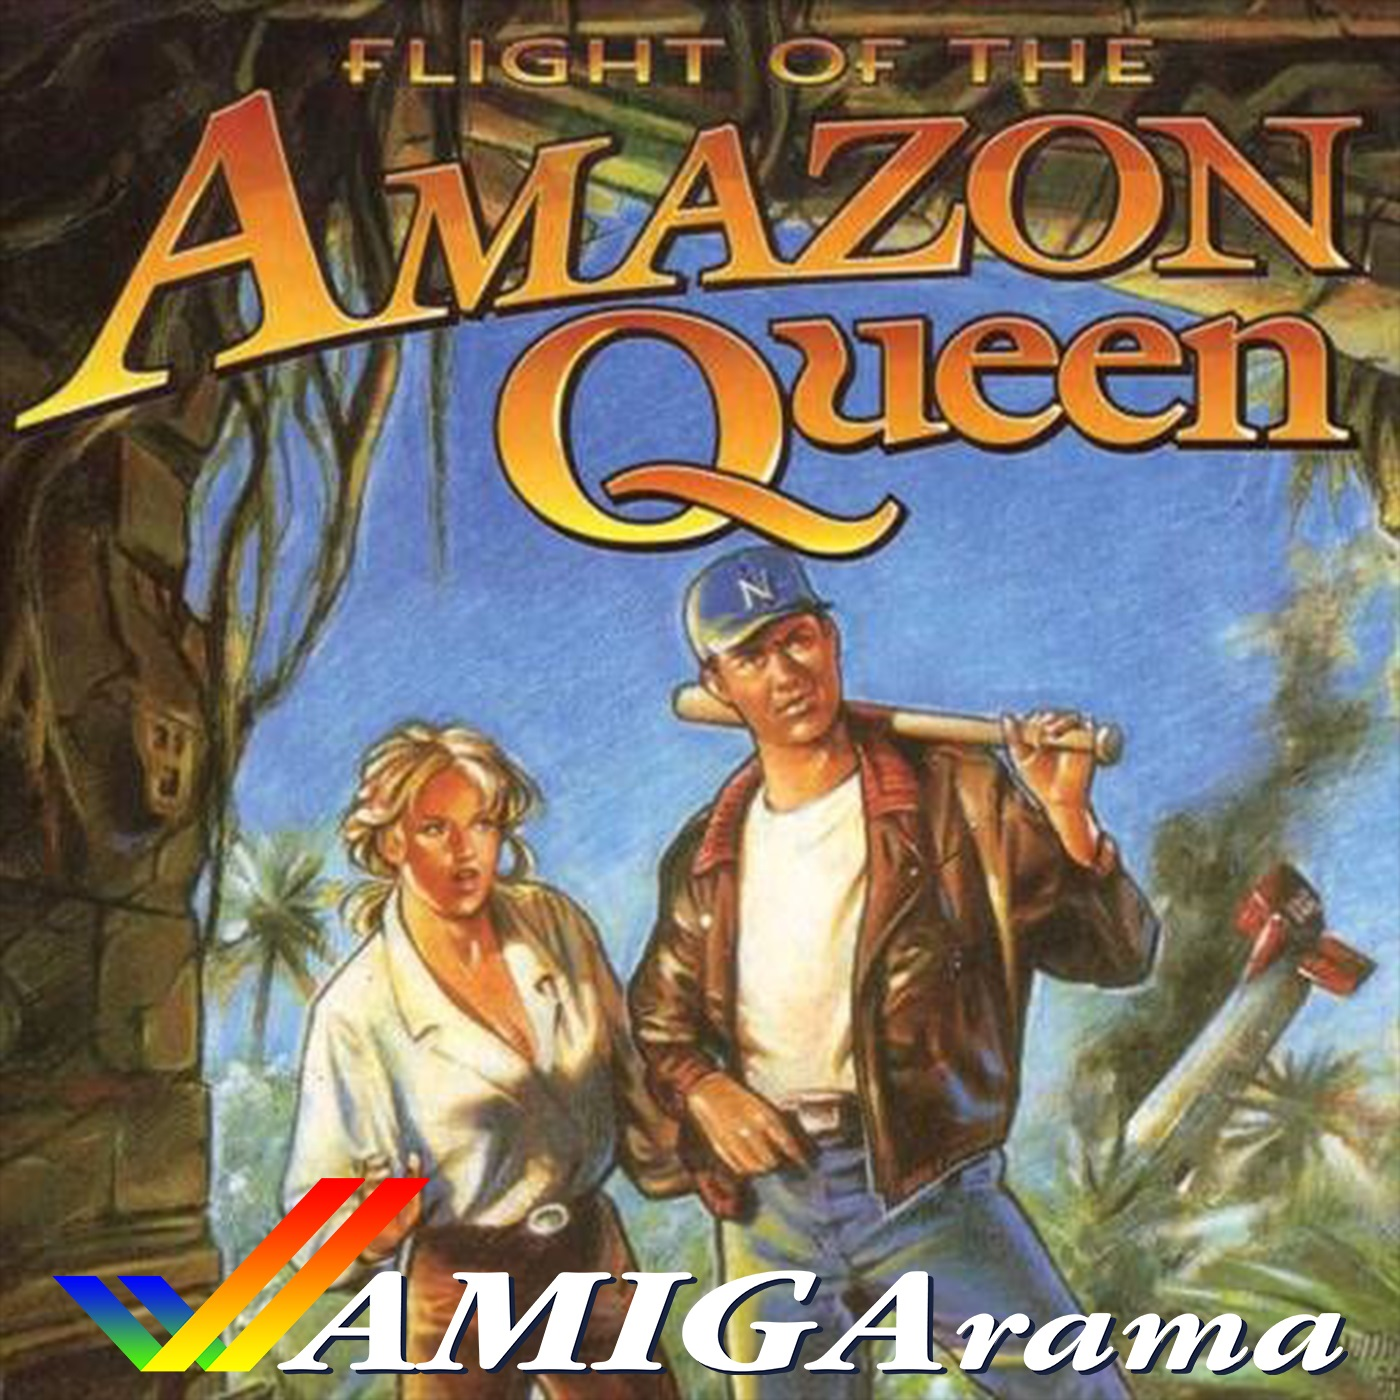 AMIGArama Podcast Episode 10: Flight of the Amazon Queen